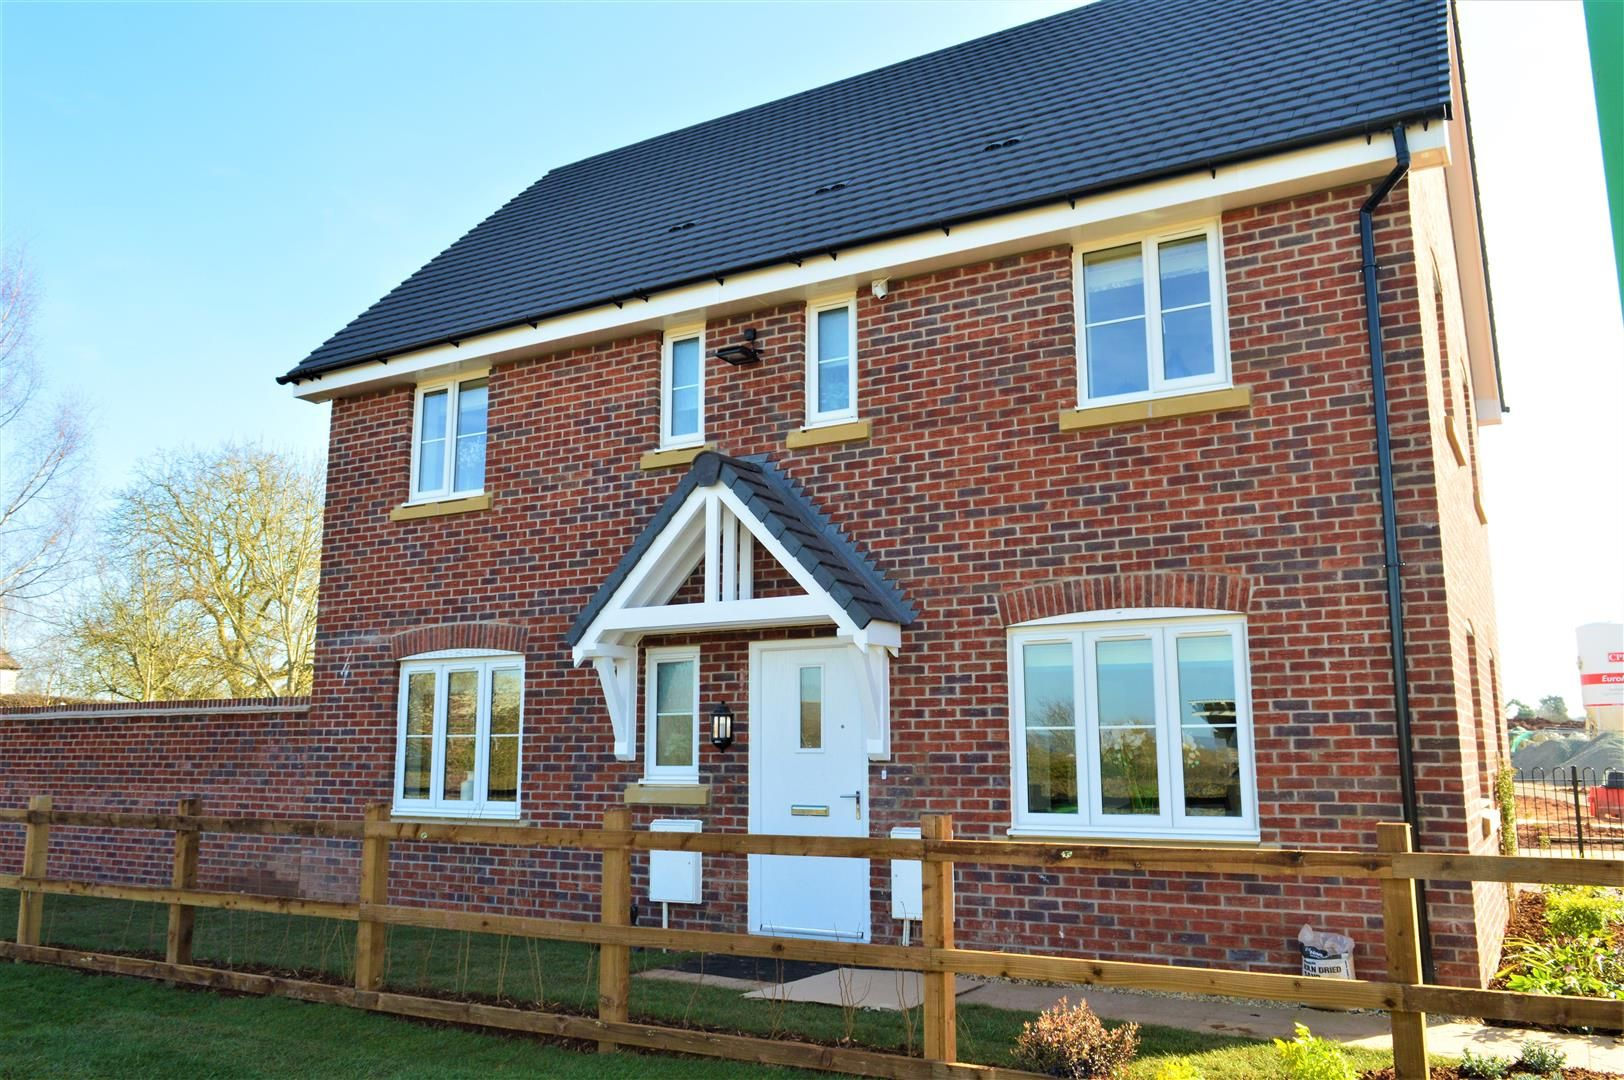 3 bed detached for sale in Kingstone - Property Image 1